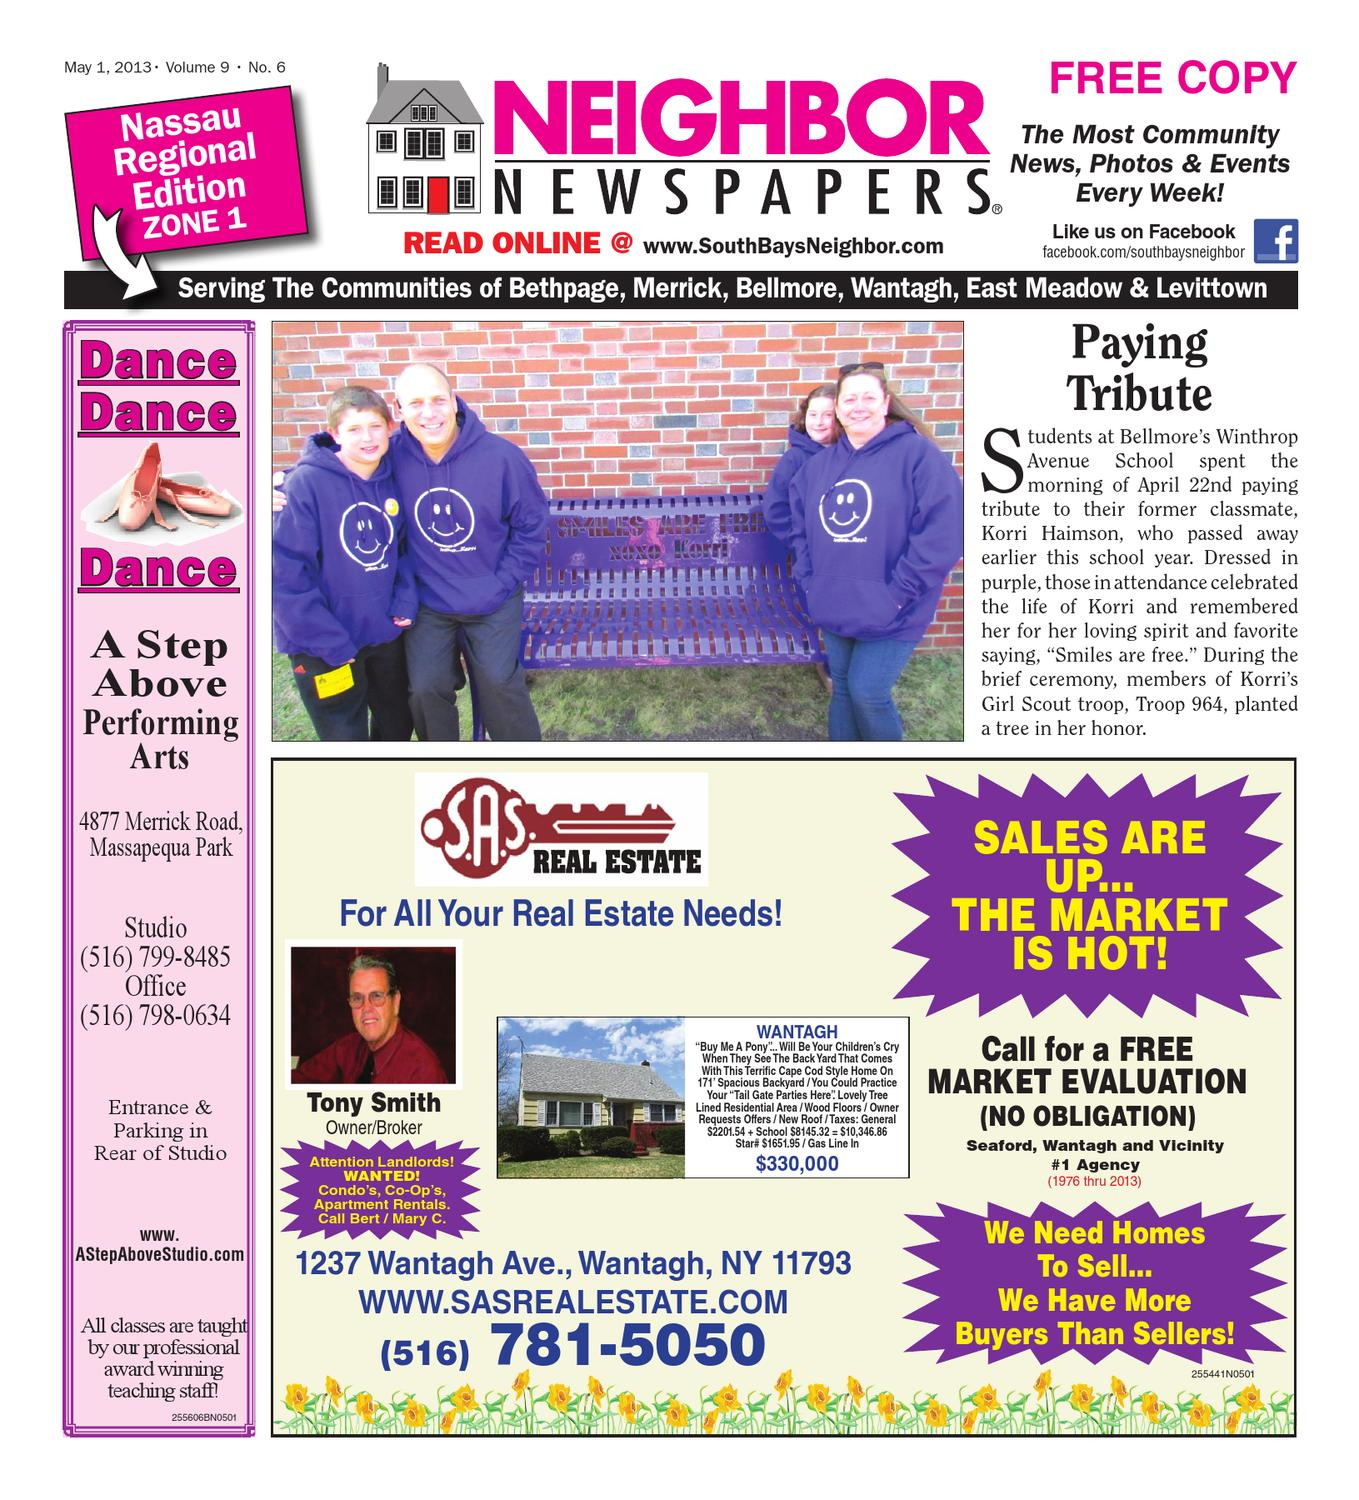 May 1, 2013 Nau Zone 1 by South Bay's Neighbor Newspapers - issuu Merrick Blvd Liry Percy Jackson on